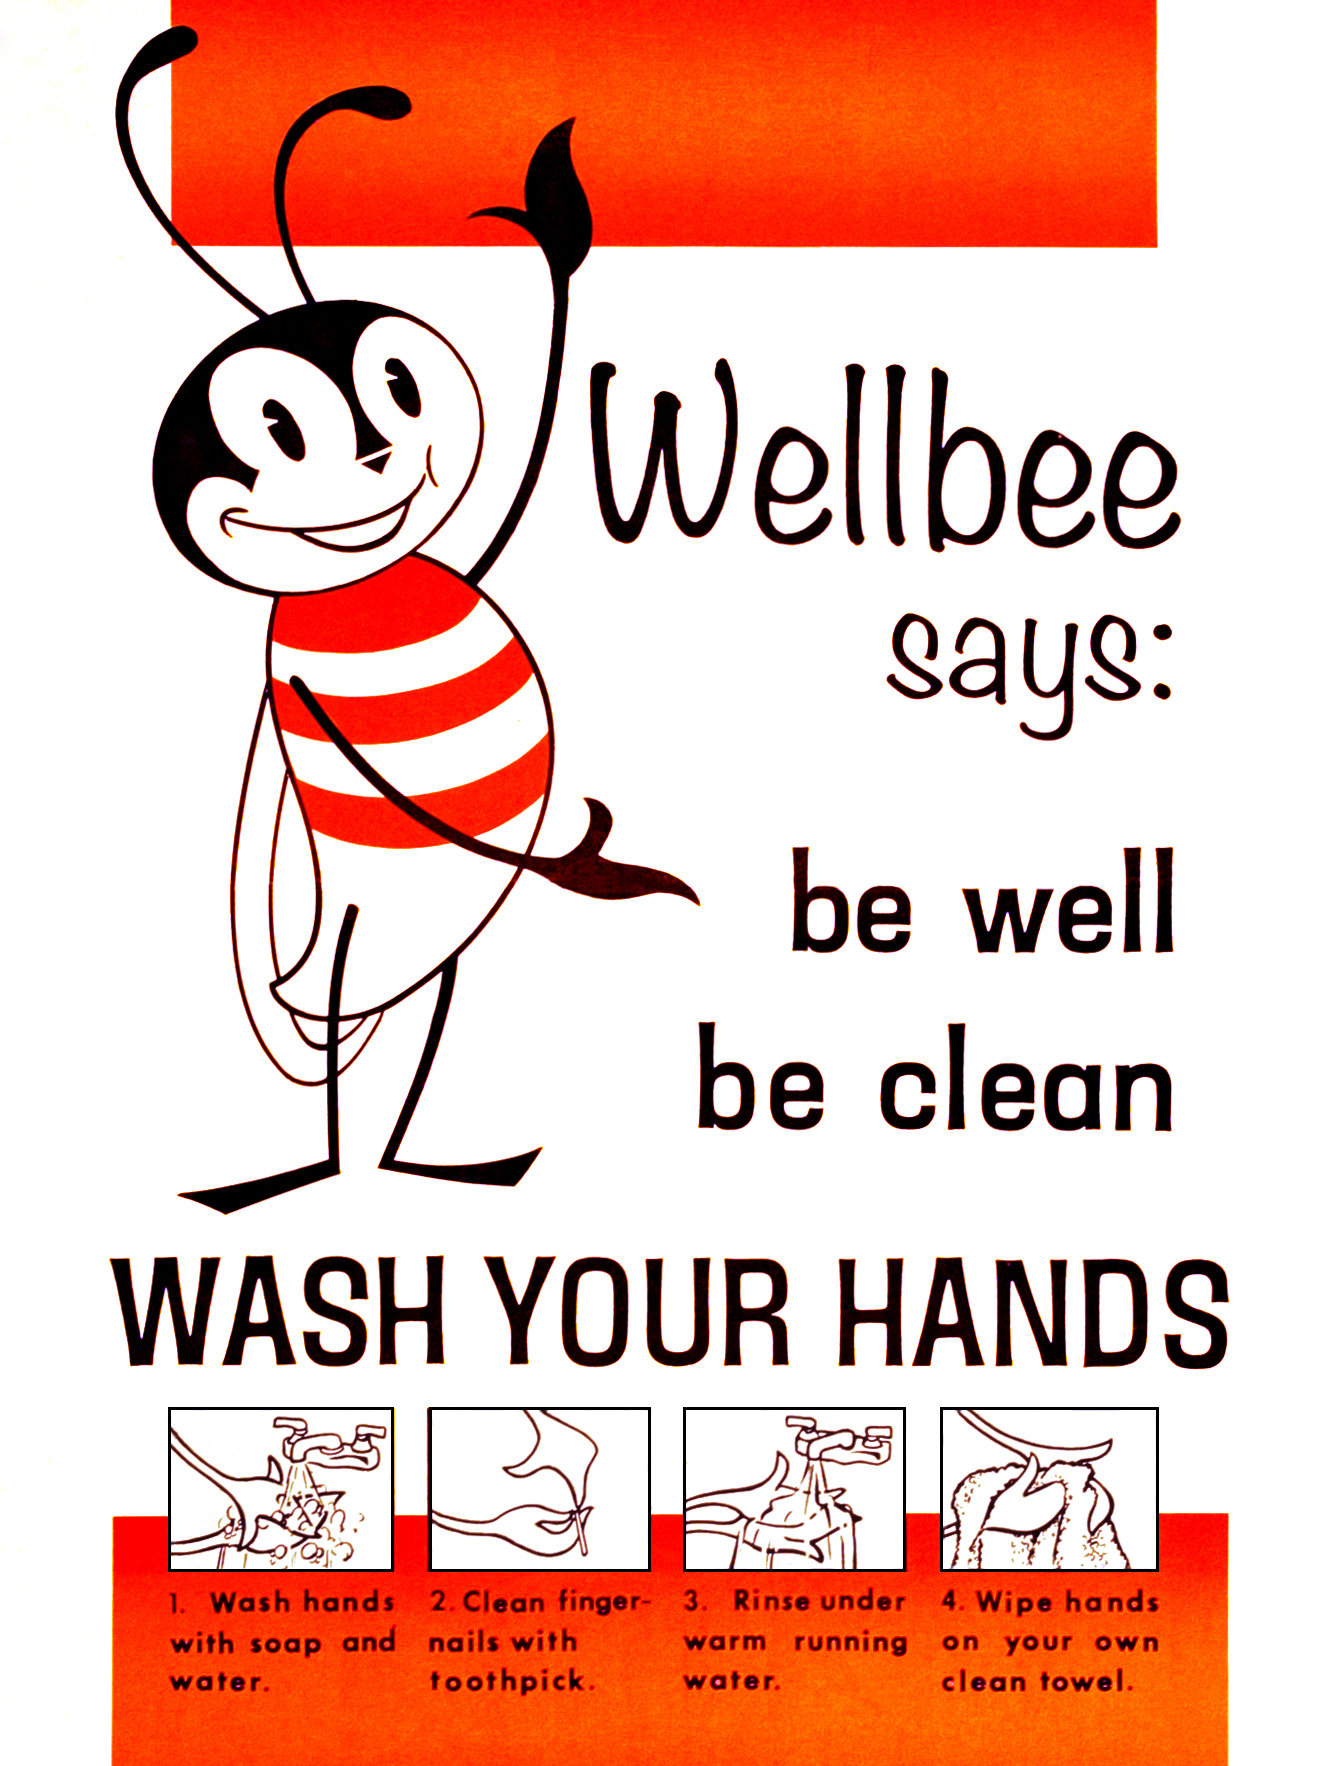 File:wash Your Hands Poster Cdc - Wellbee - Wikimedia Commons - Free Printable Hand Washing Posters